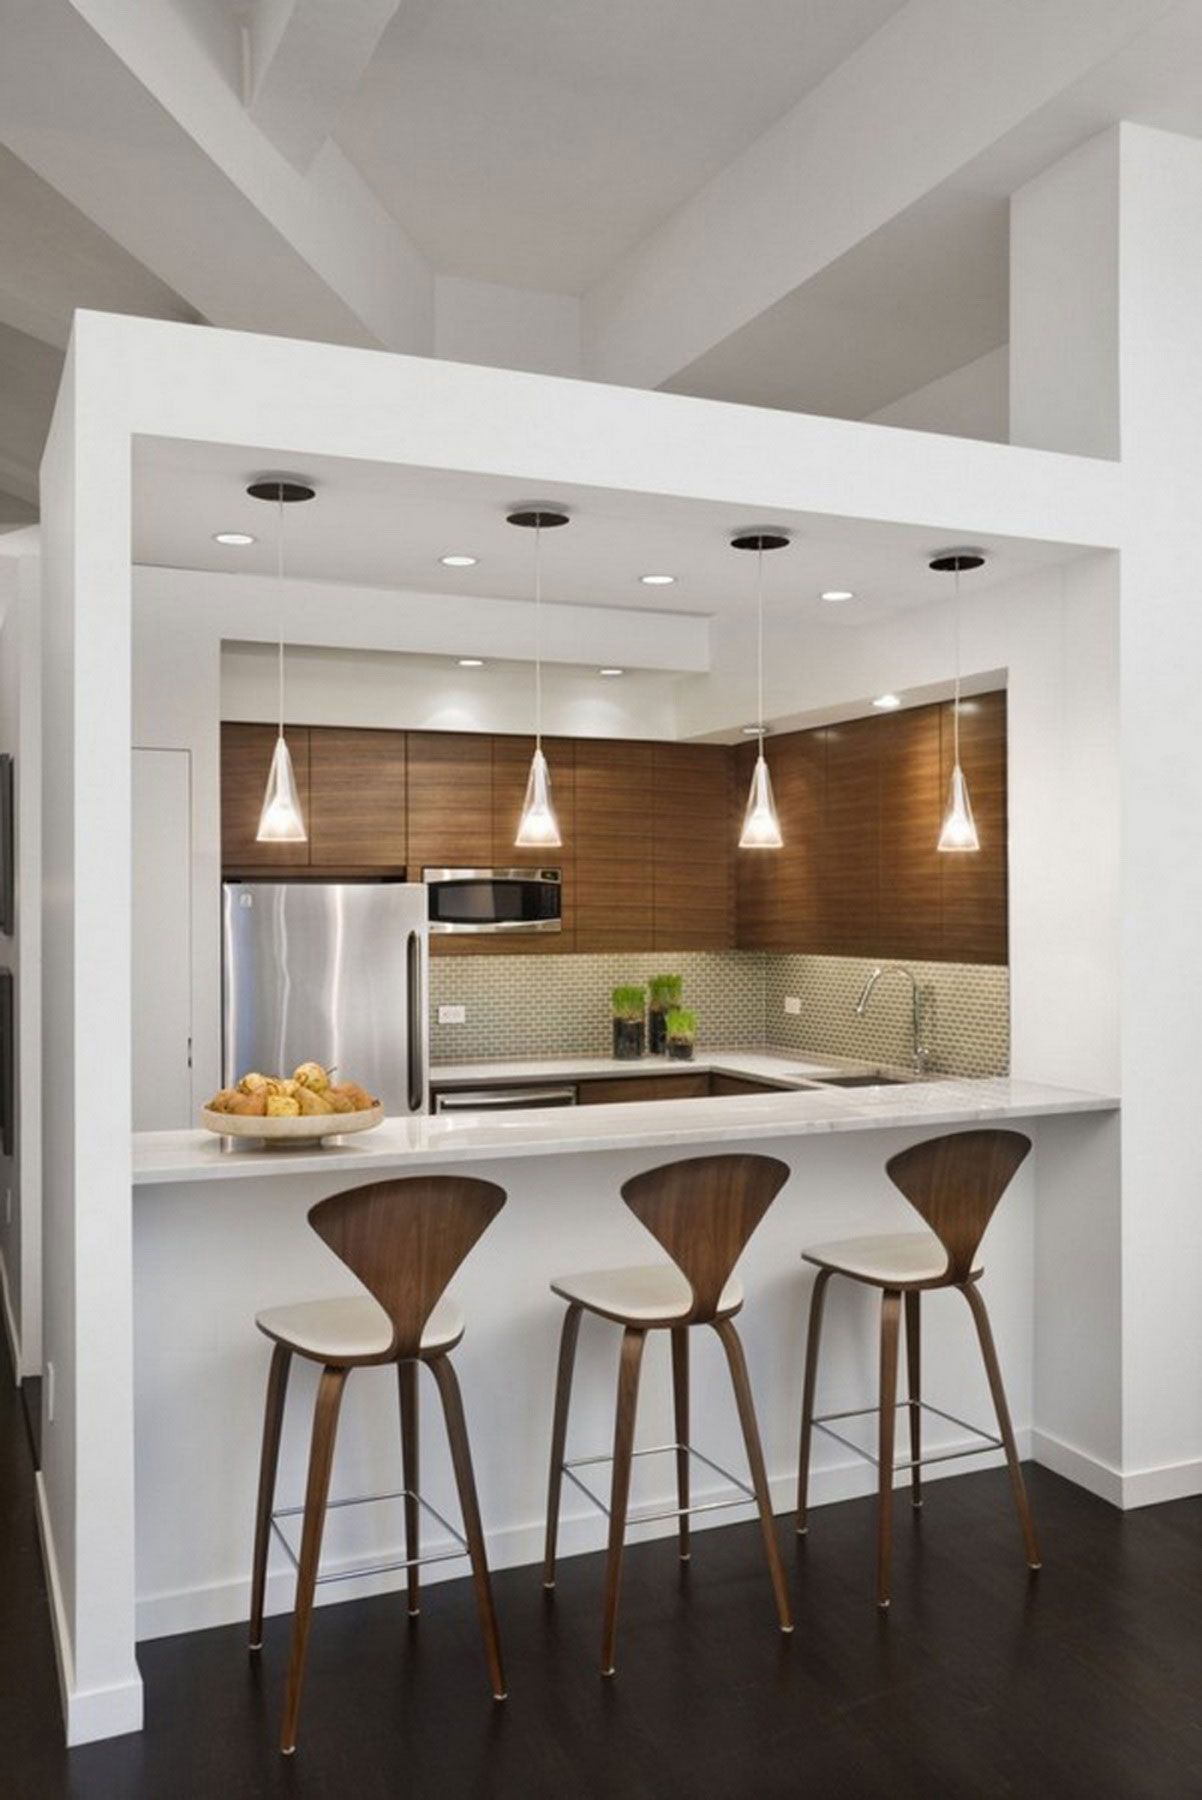 Check Out Small Kitchen Design Ideas  What These Small Kitchens Lack In Space They Make Up For With Style Their Secret Good Storage Is The Ultimate Kitchen Design And